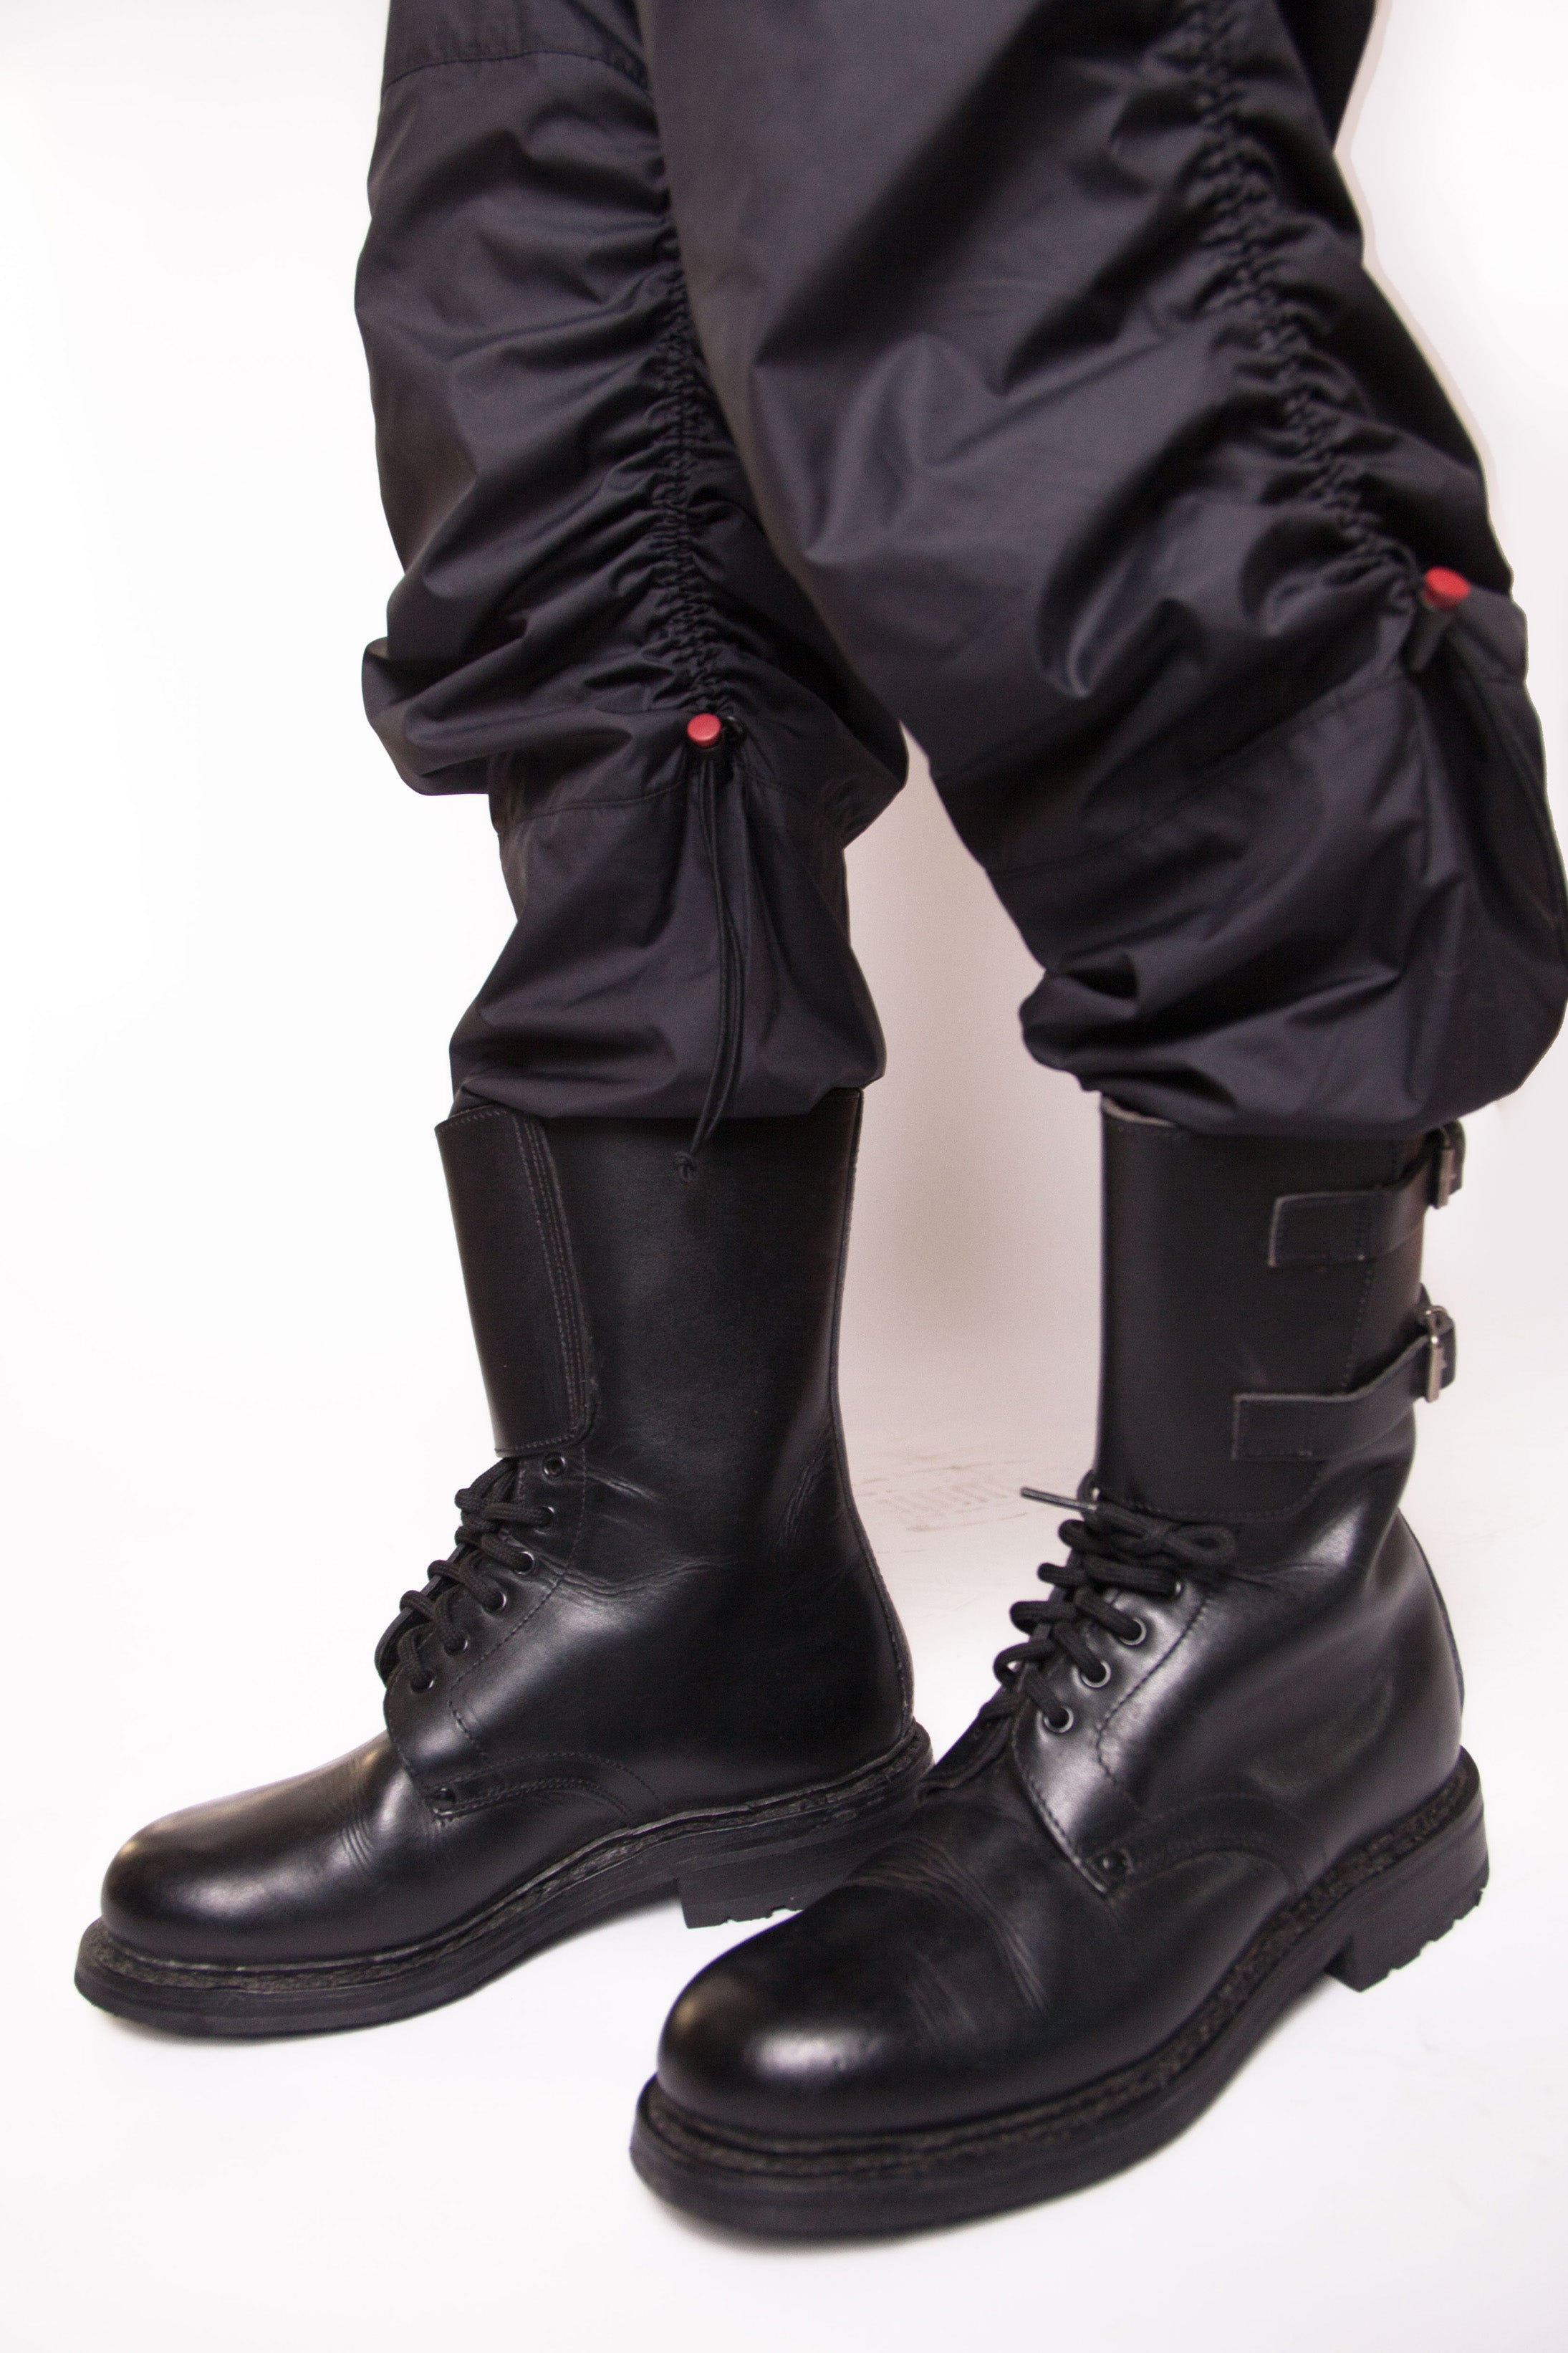 ecb4c29e97984 Vintage 90s Y2K Buckled Combat Boots